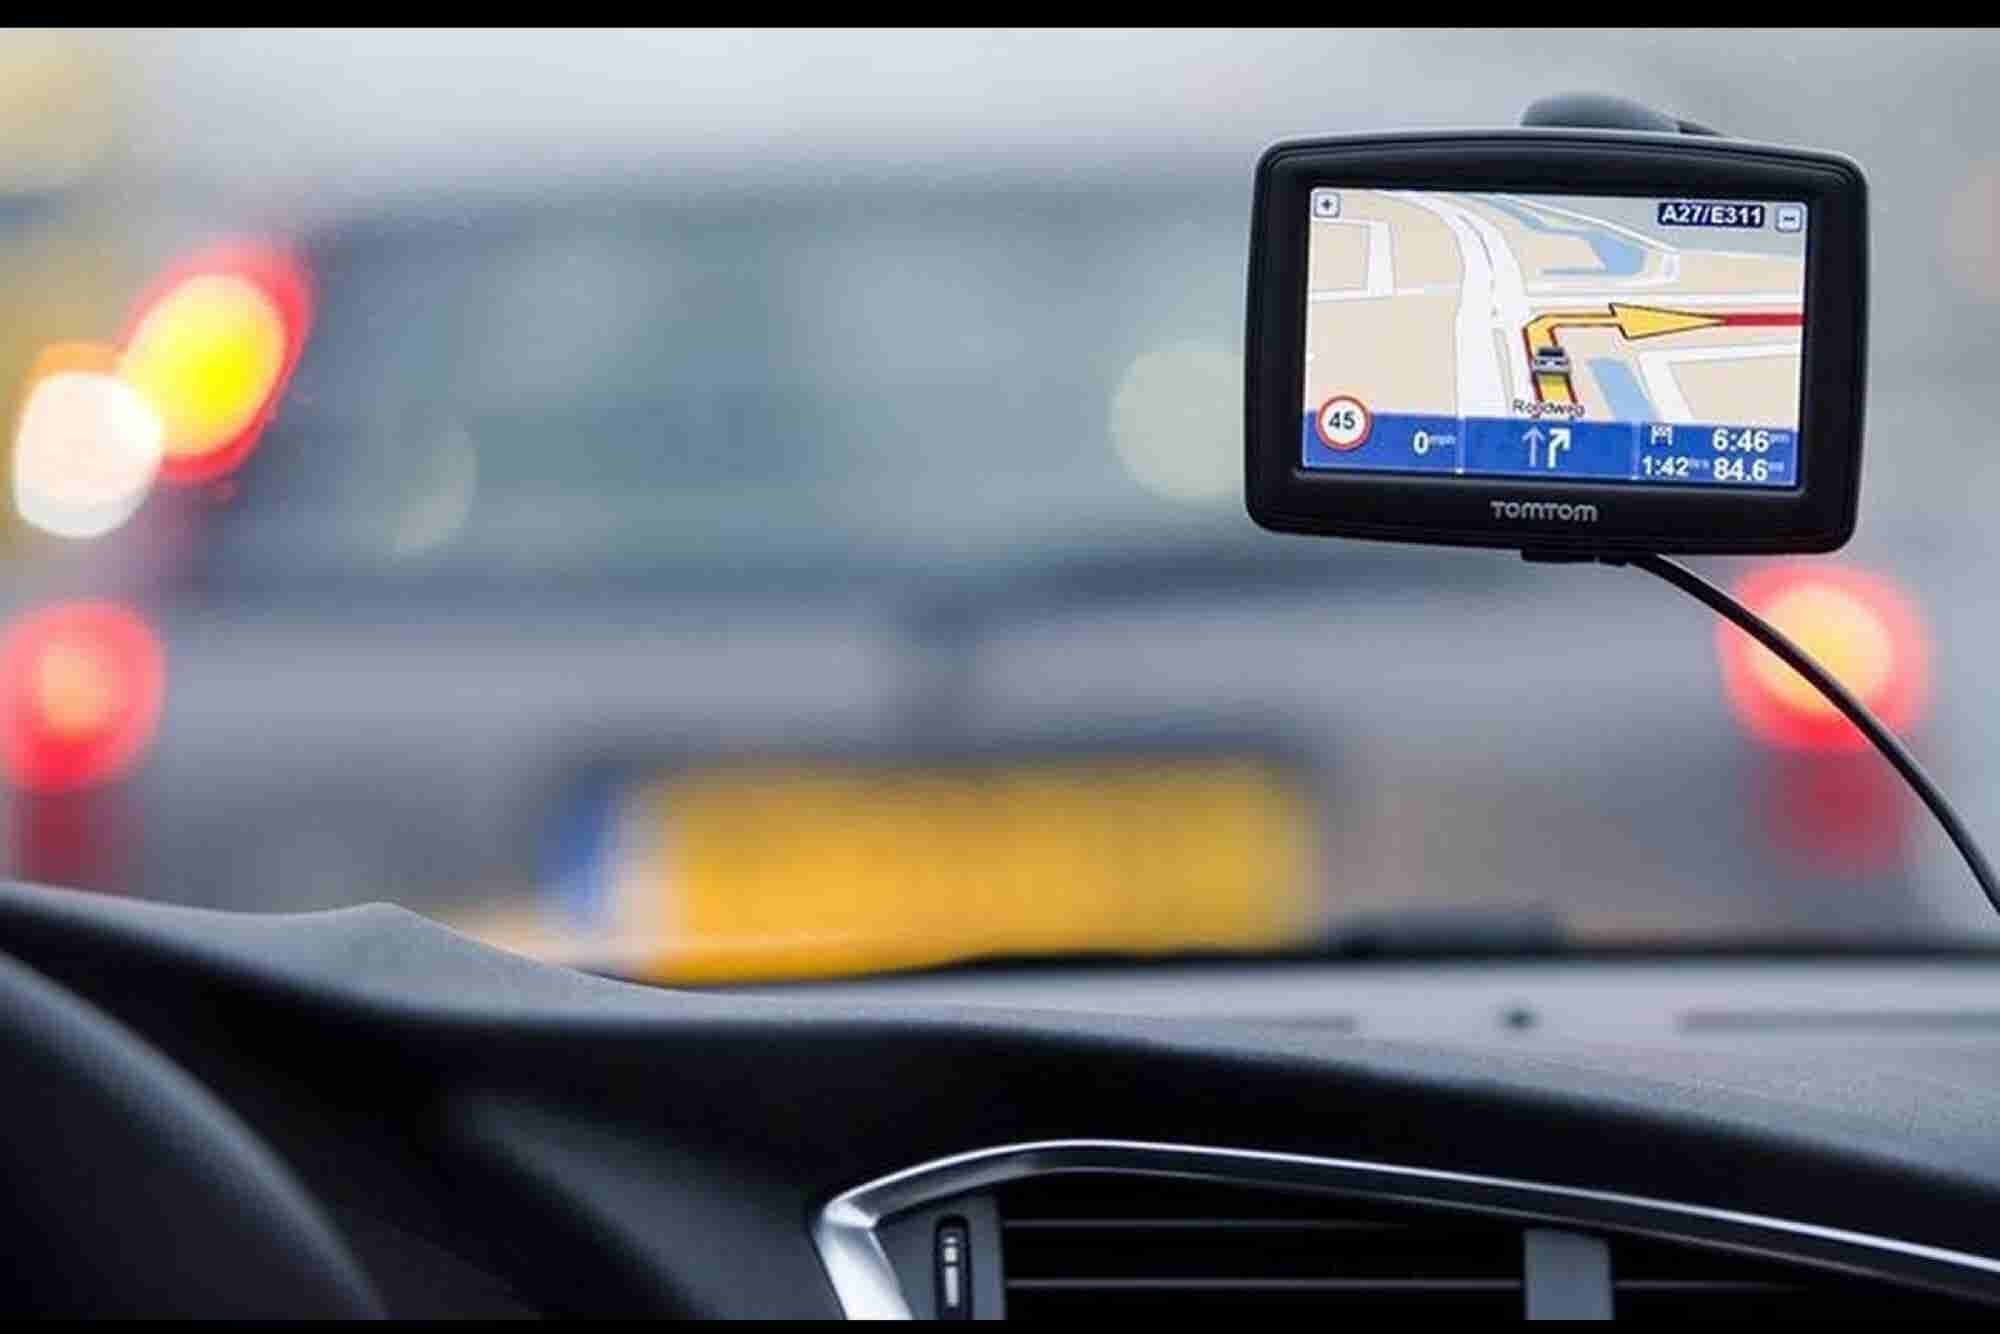 TomTom Says Its Maps Are Destined for Self-Driving Cars